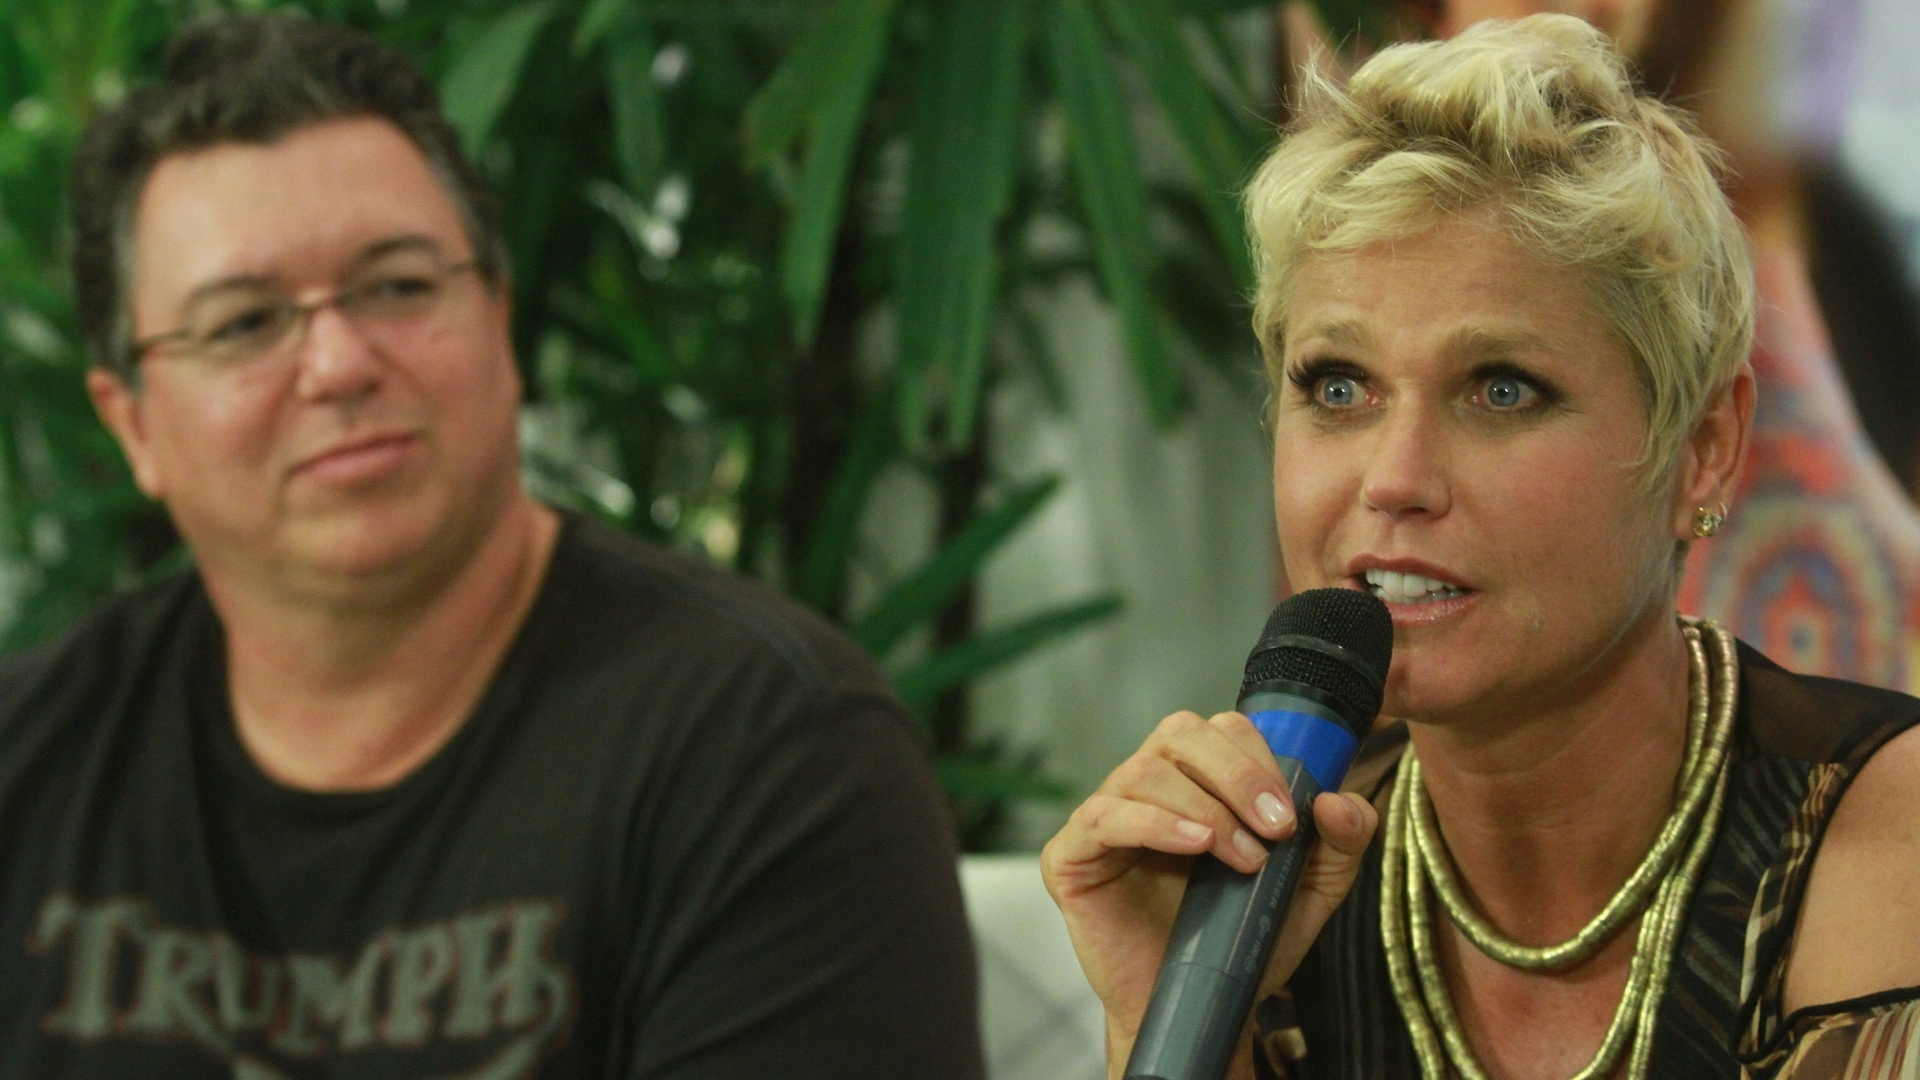 Boninho e a apresentadora Xuxa em gravao do seu programa